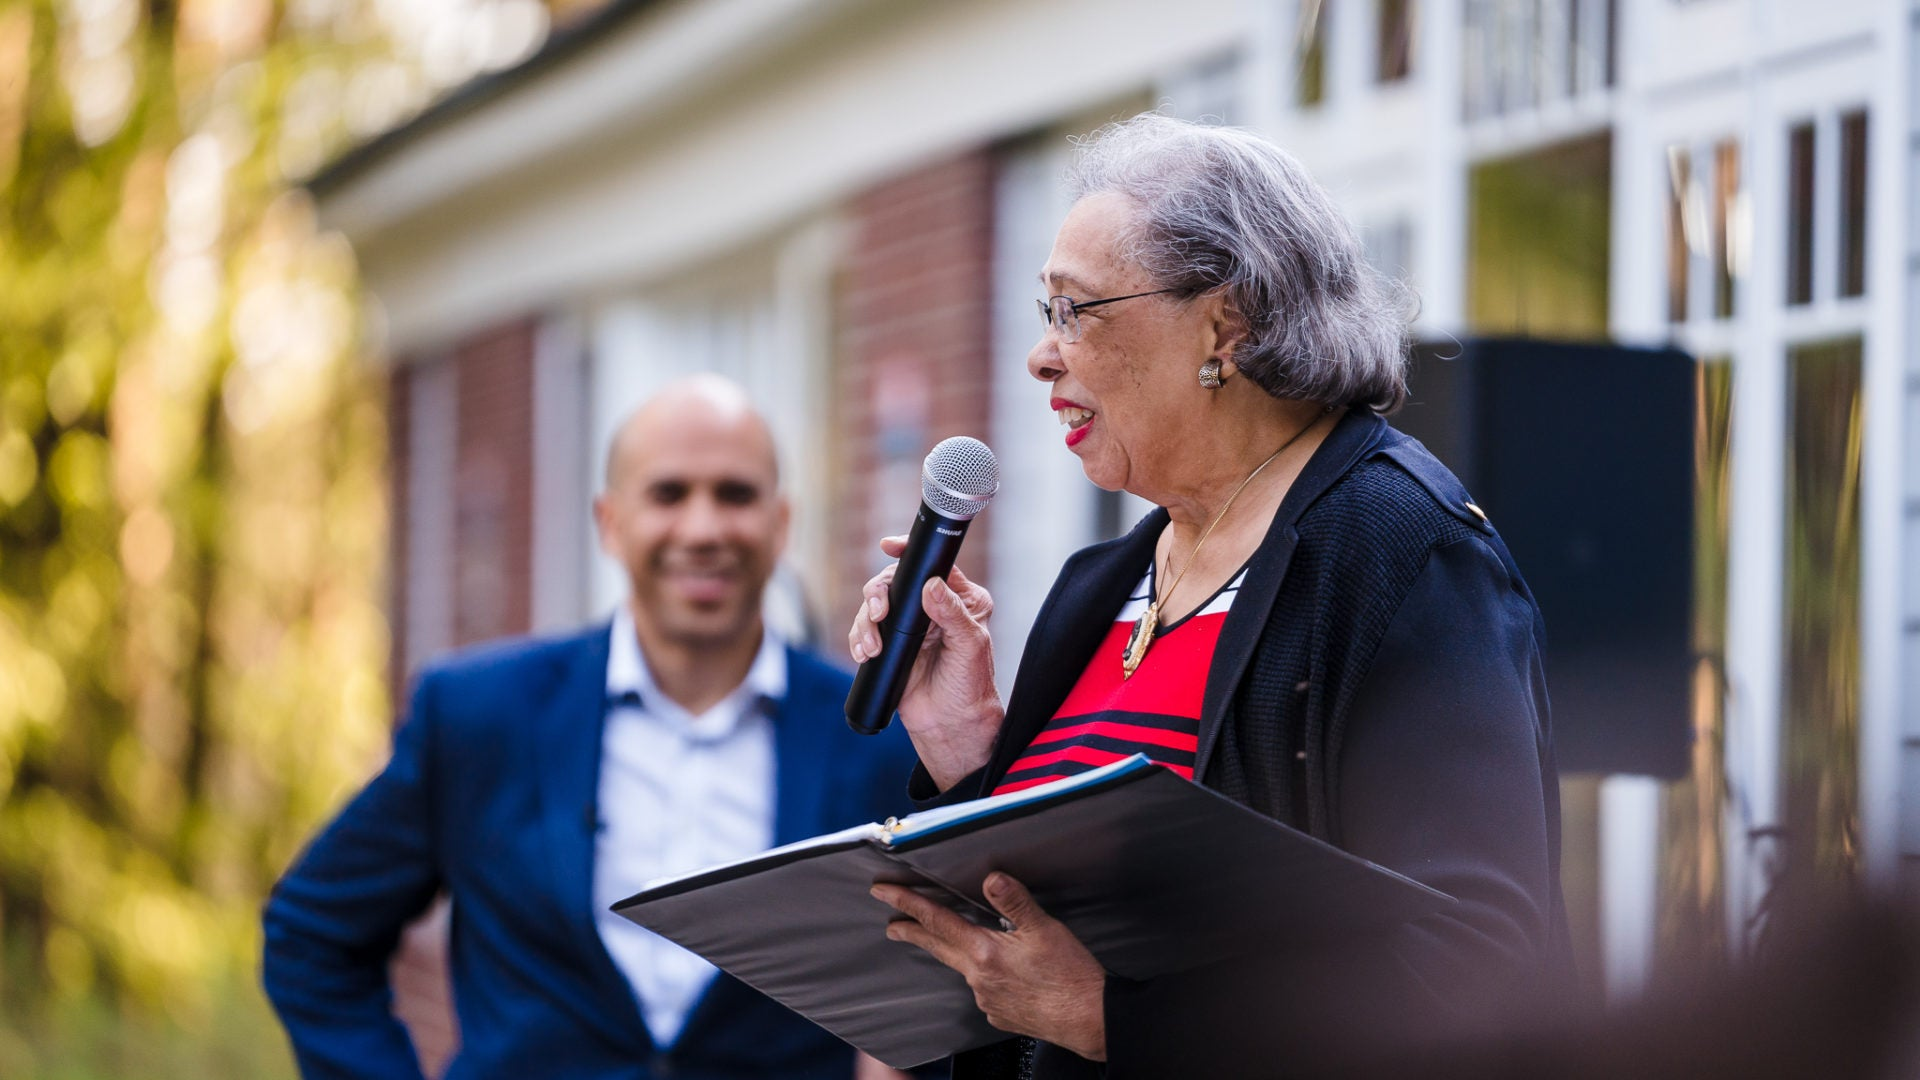 Cory Booker's Mother Reflects On The Family Legacy Of Activism And Service